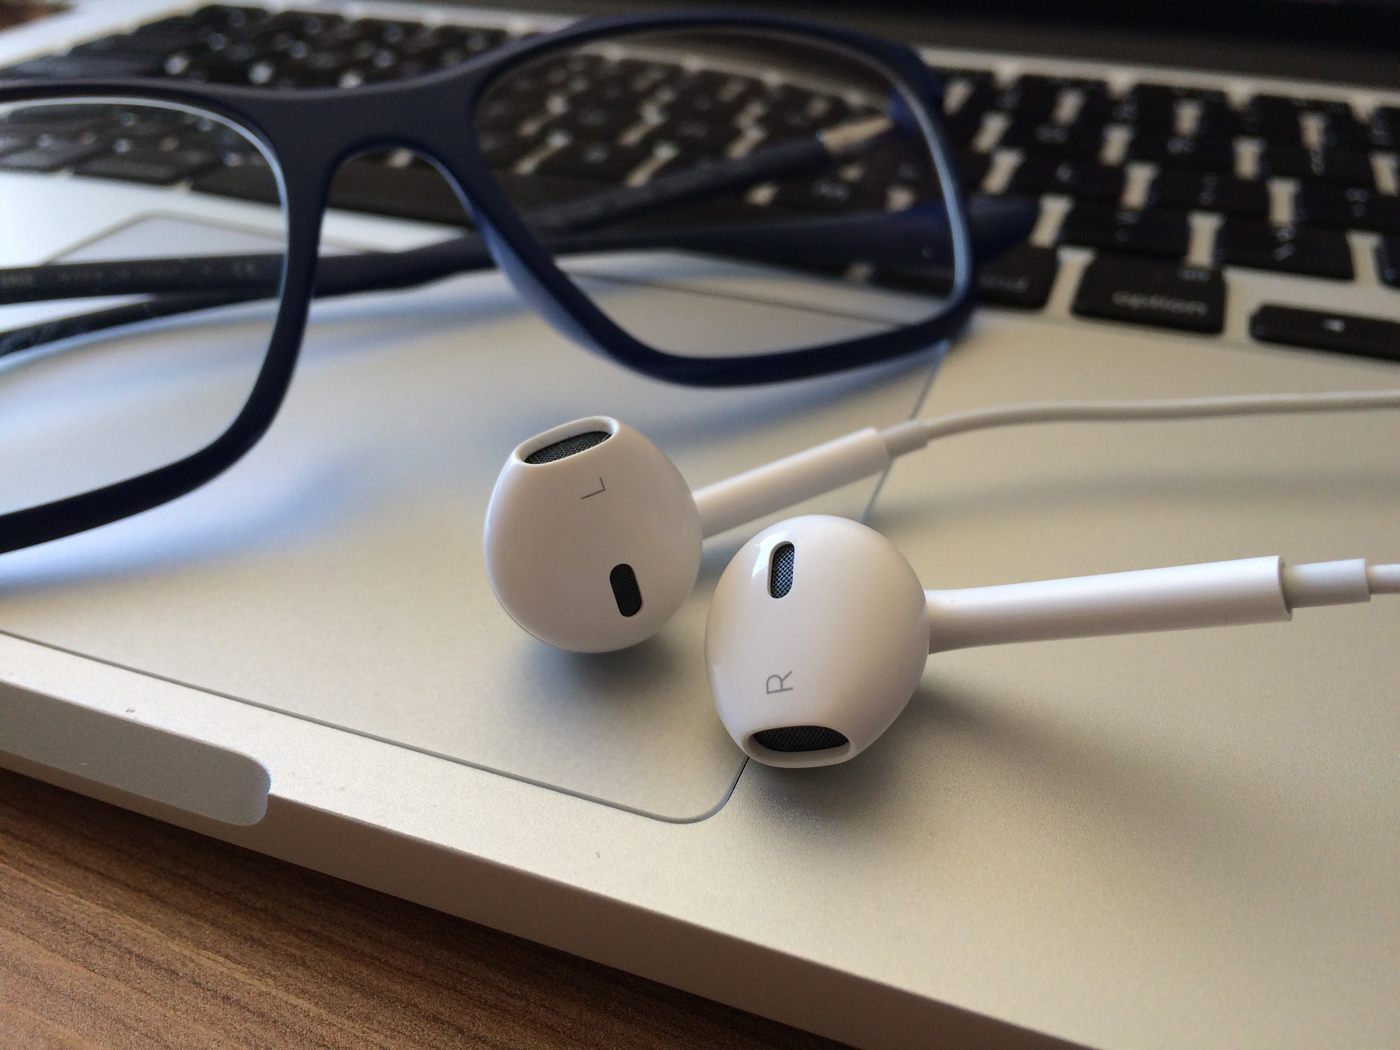 A pair of headphones resting on a laptop next to a pair of reading glasses